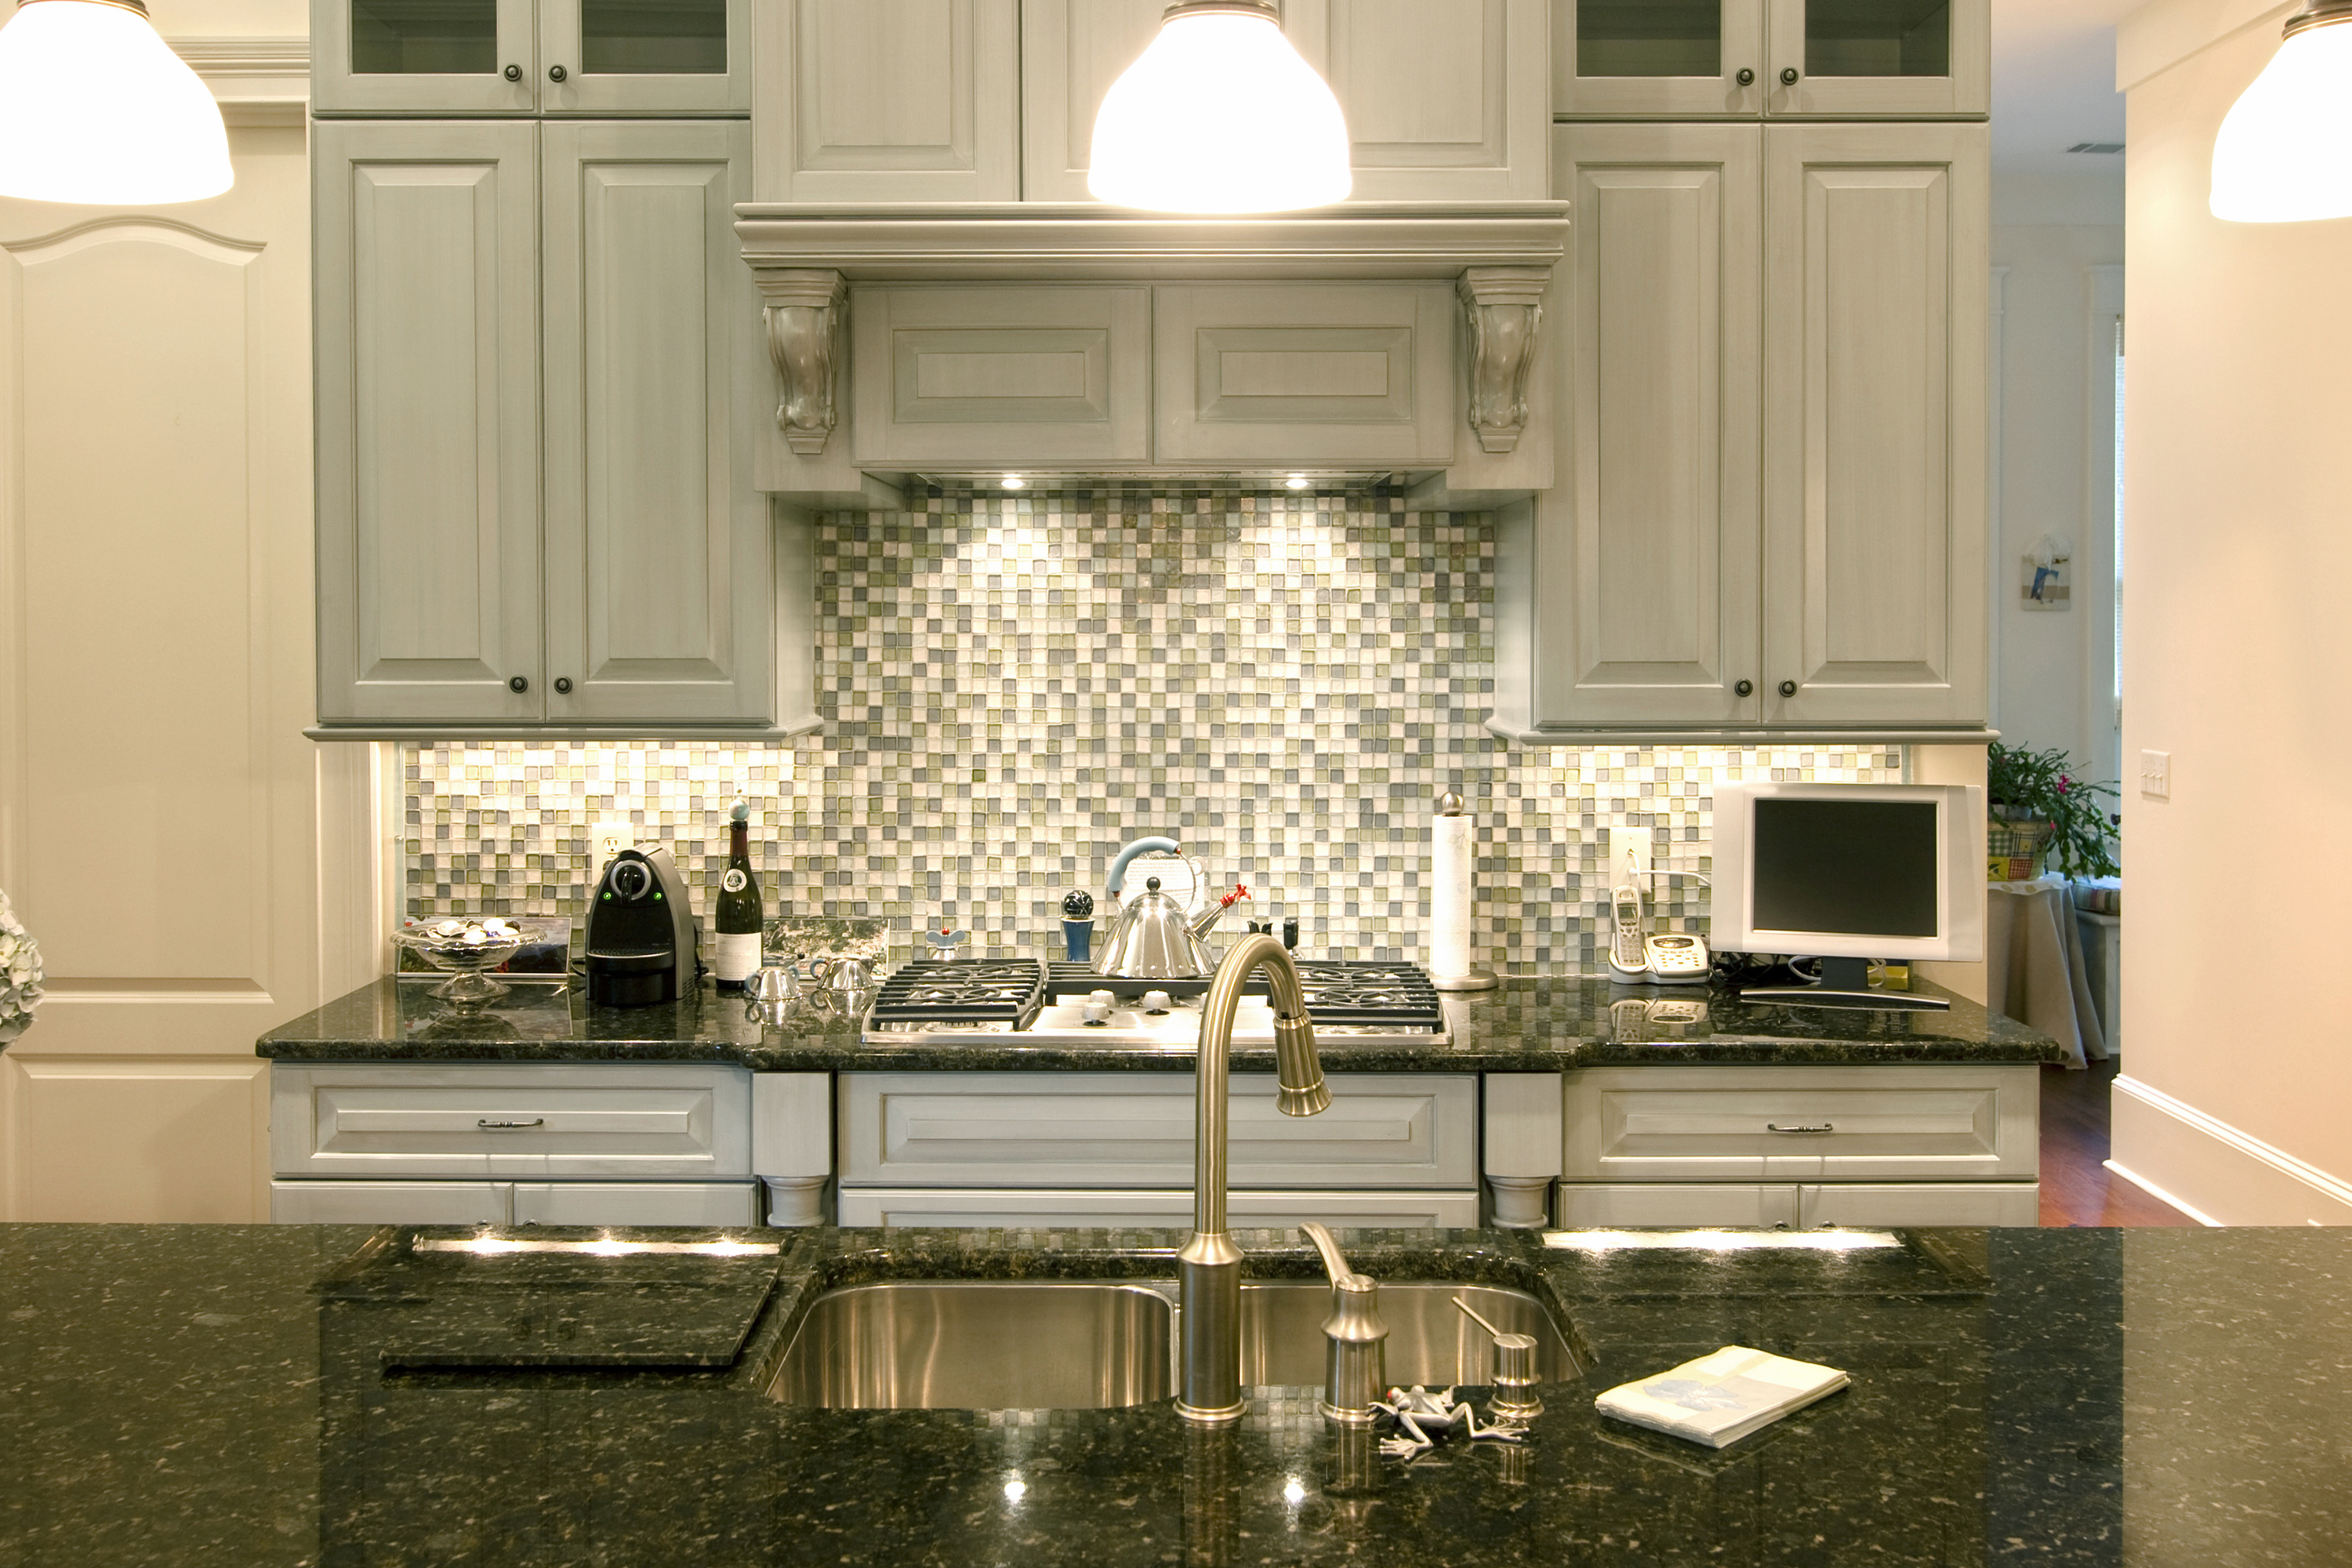 Dark Granite Kitchen Countertops The Best Backsplash Ideas For Black Granite Countertops Home And